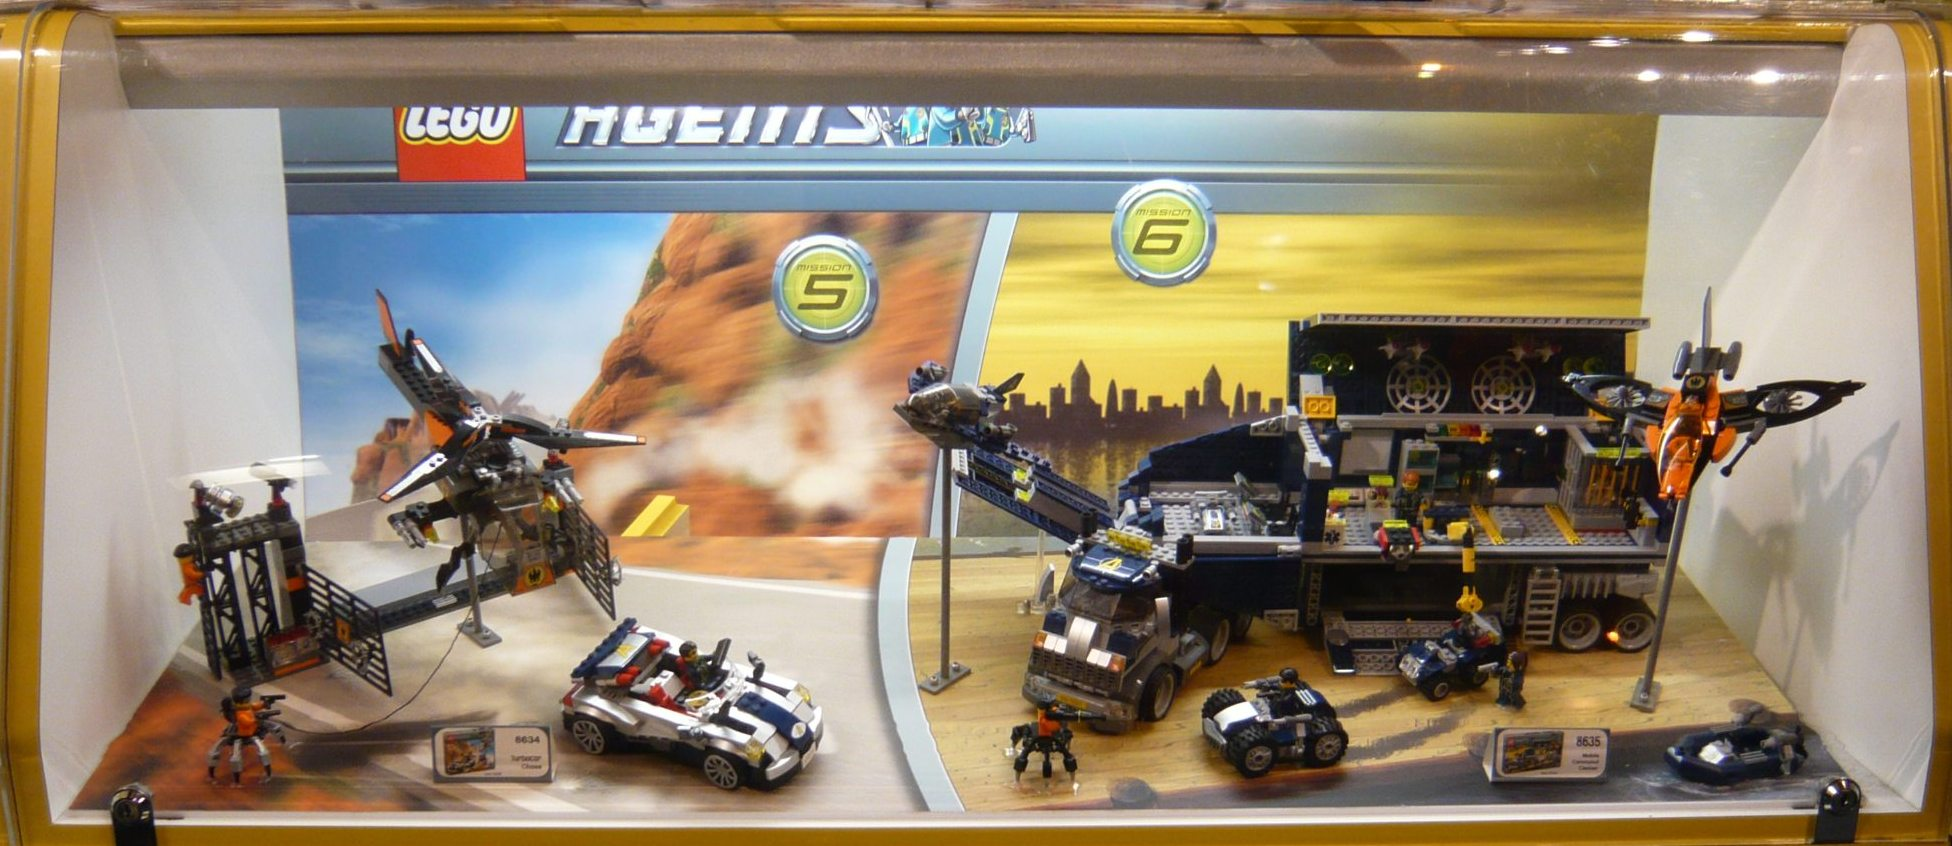 6_d_lego_agents_sets_all_1toysrus.jpg